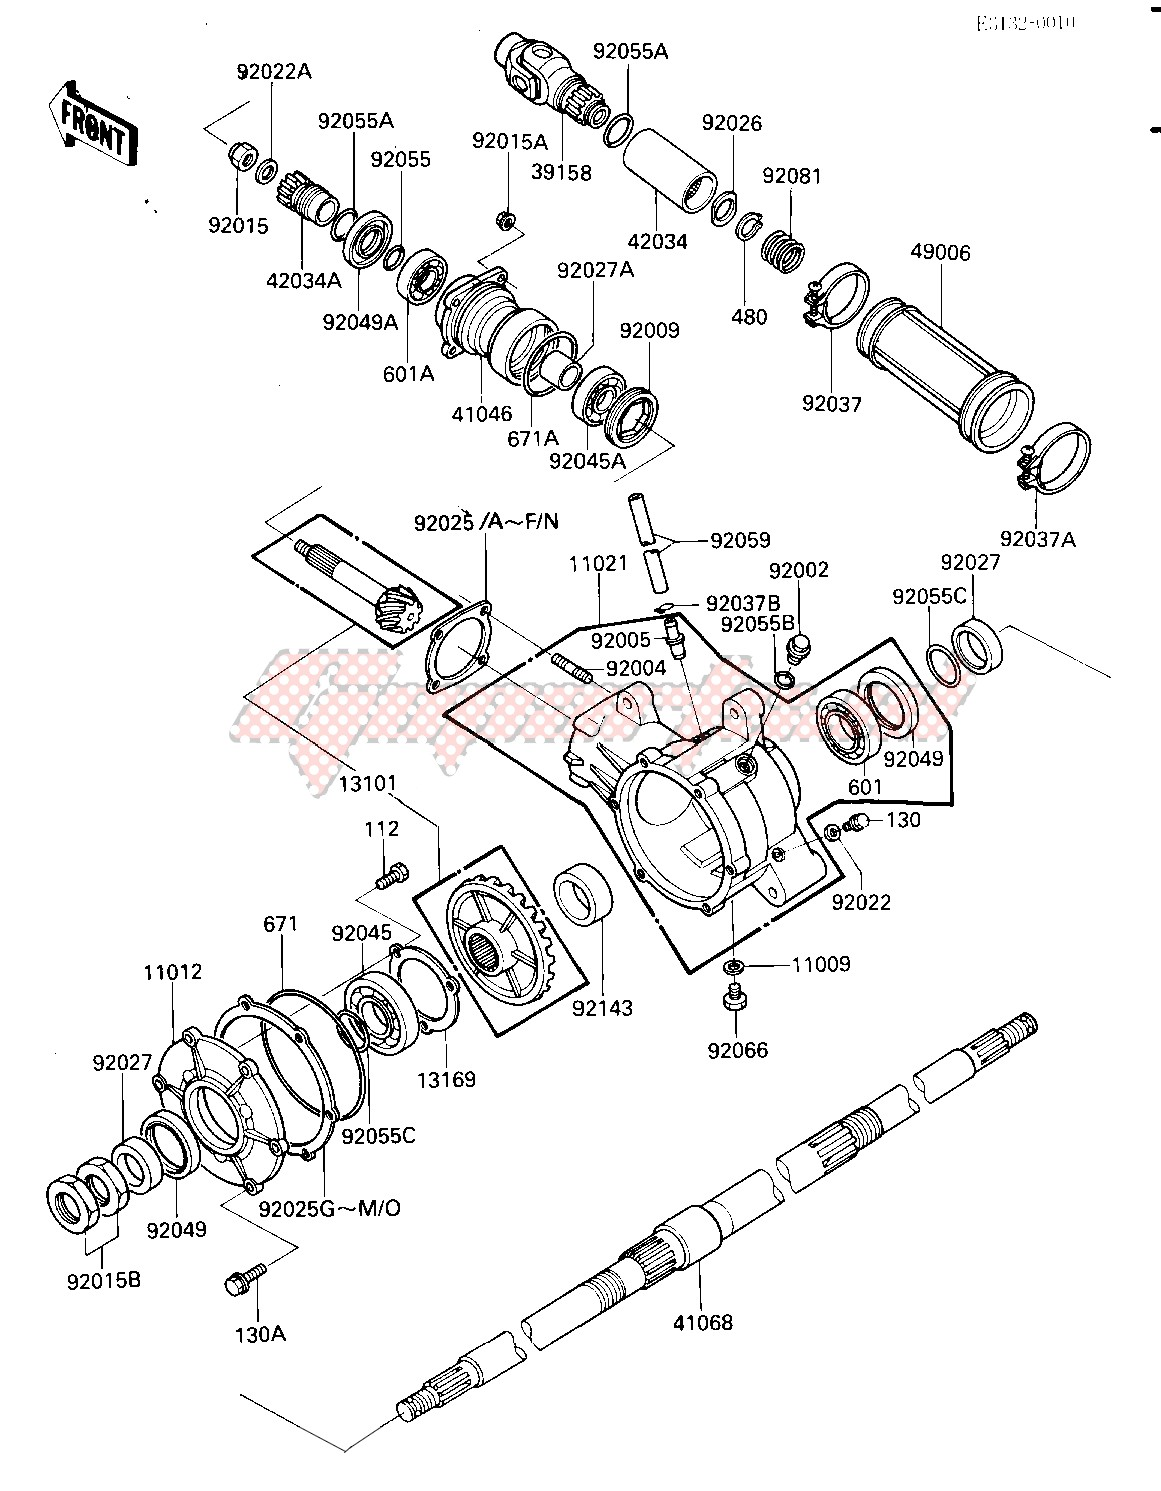 DRIVE SHAFT_FINAL GEARS_REAR AXLE -- E_NO. 015128-- - image